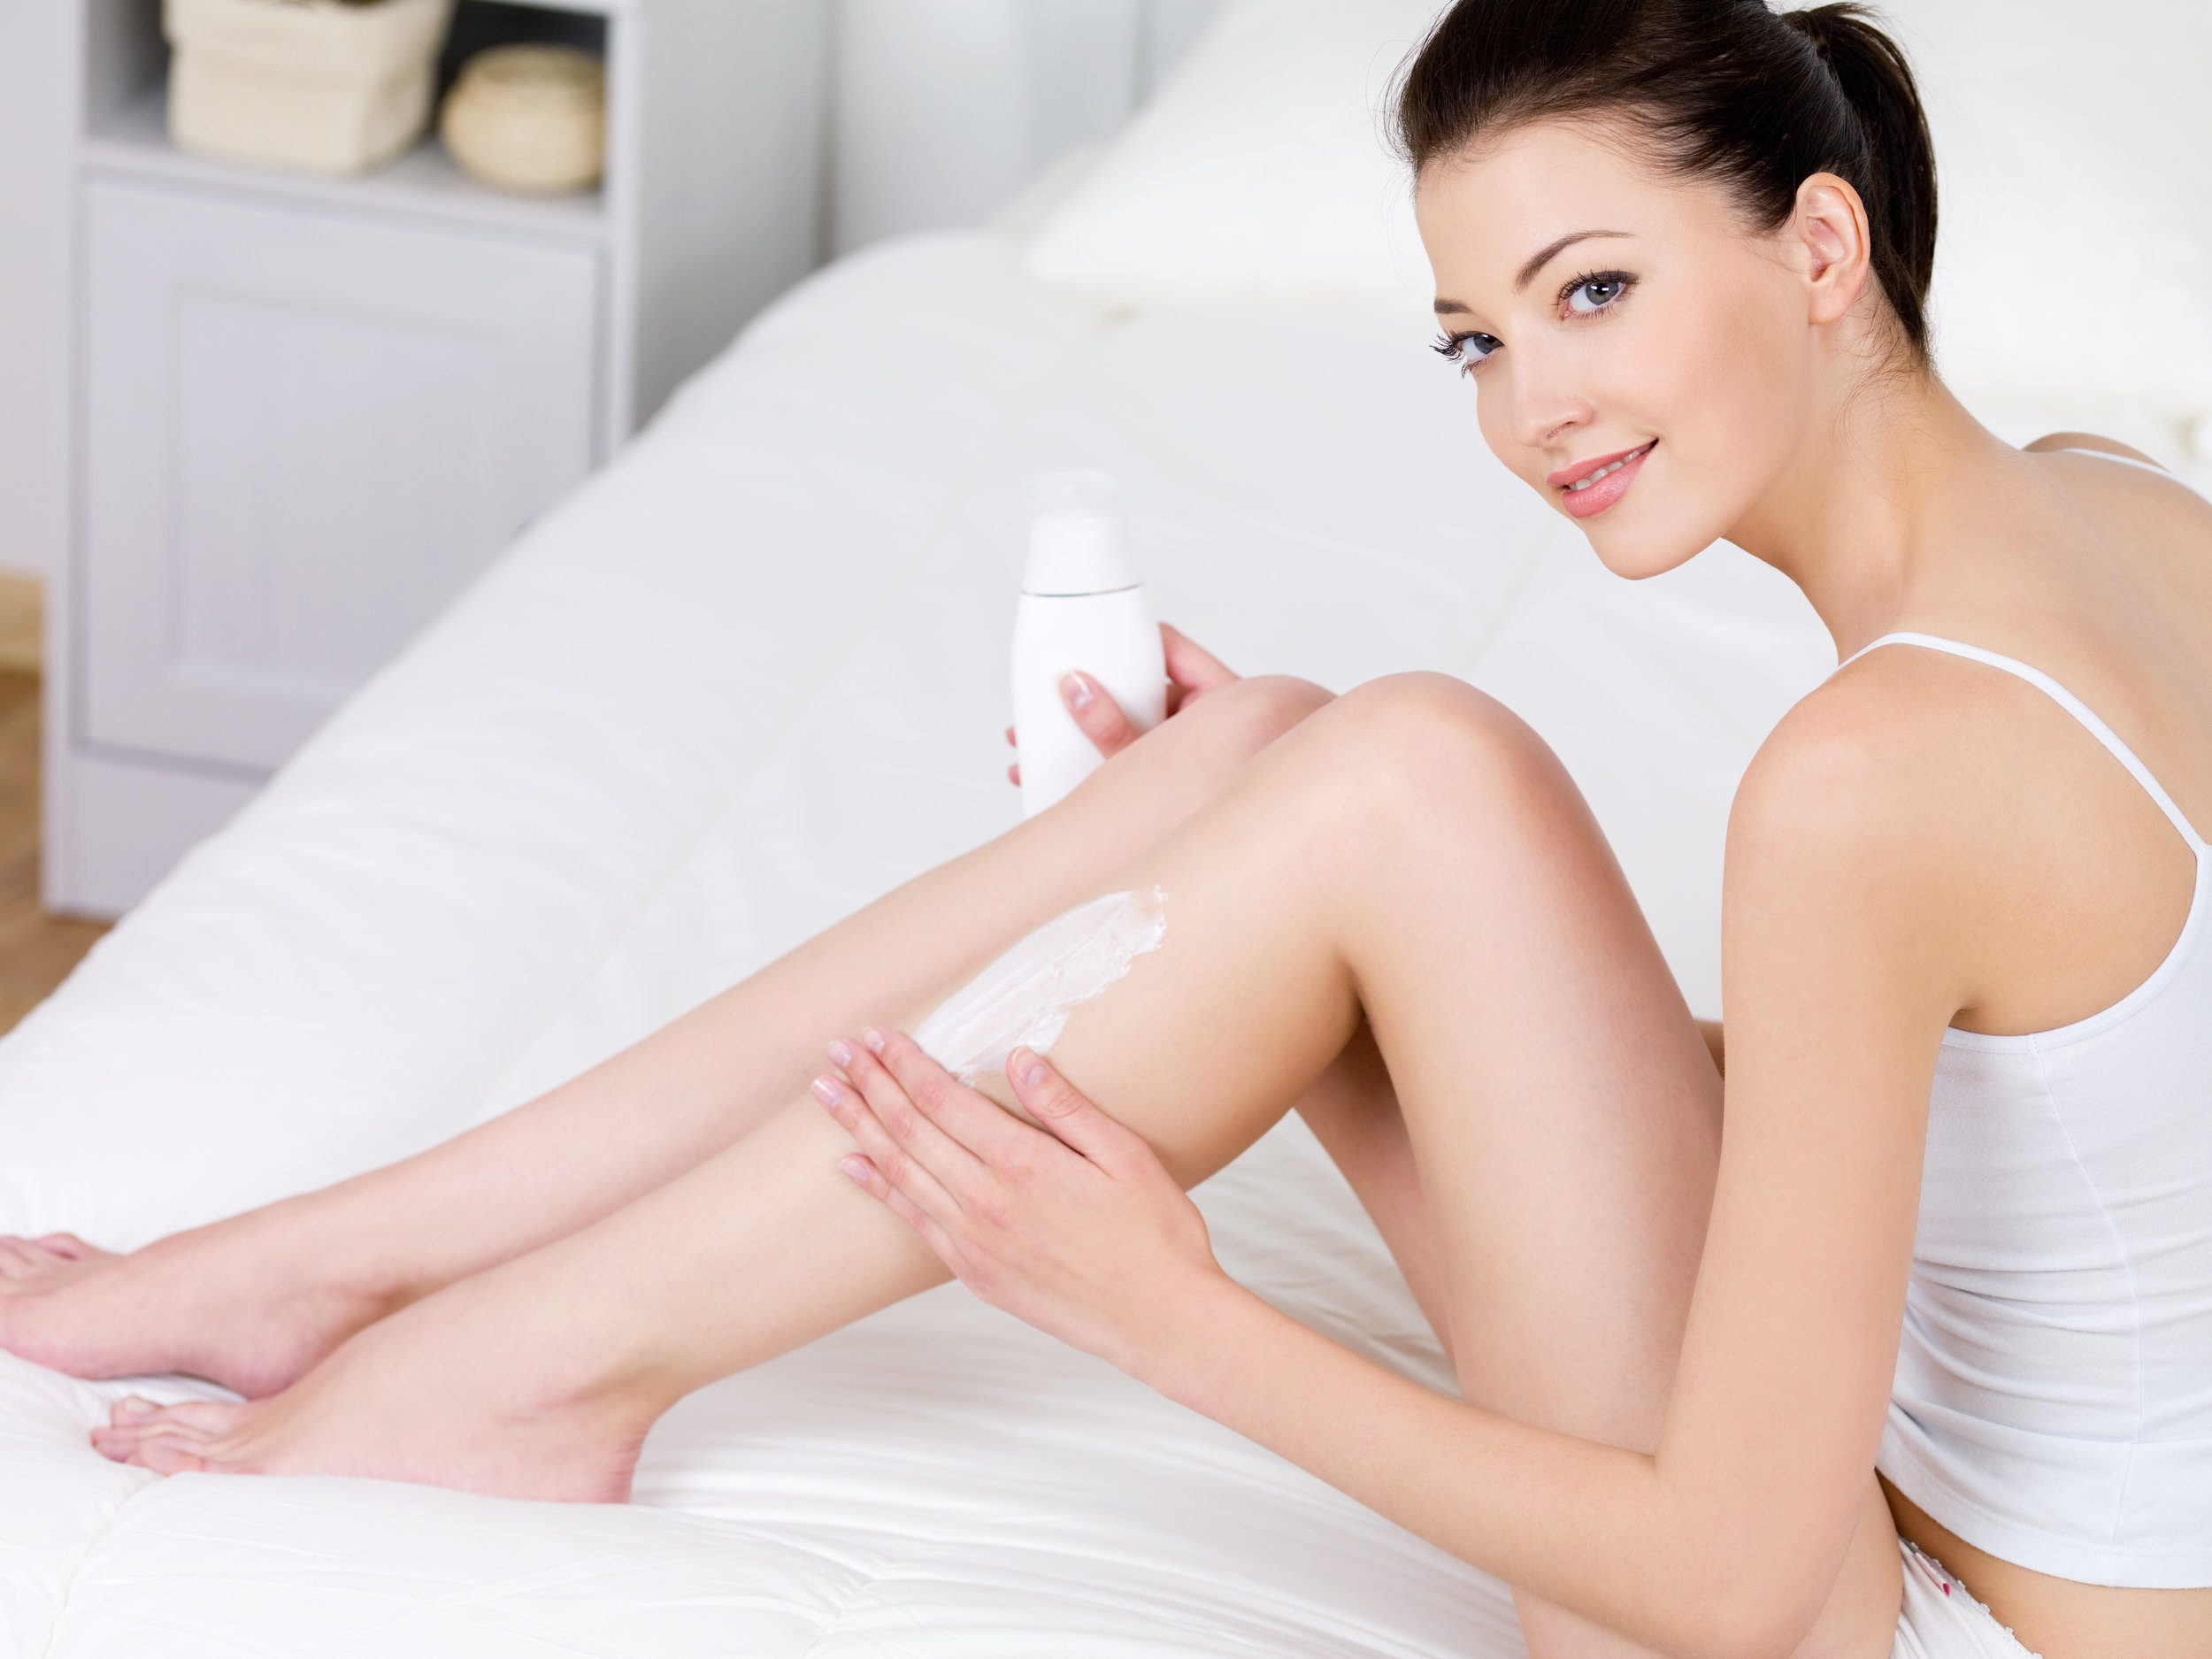 Woman applying body lotion on her legs